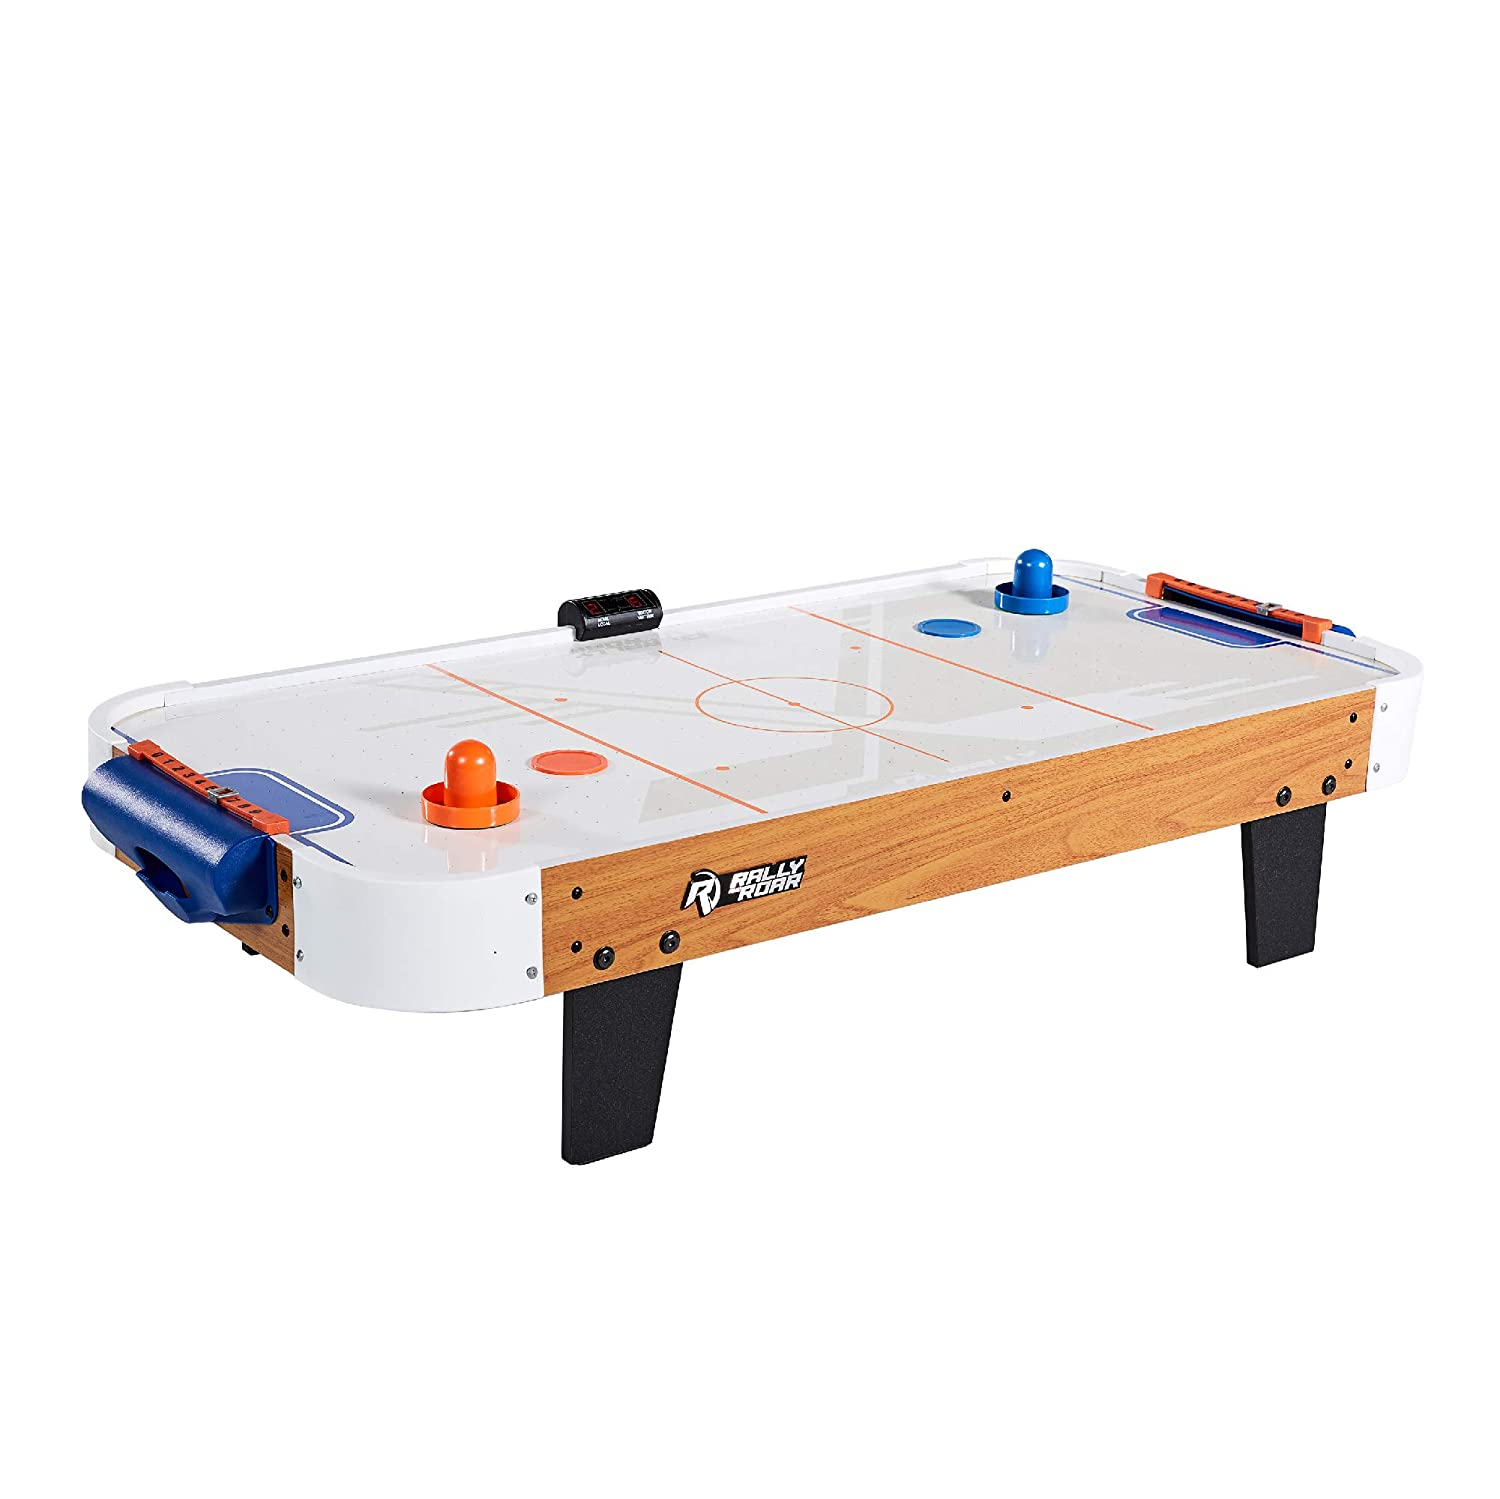 Tabletop Air Hockey Table, Travel-Size, Lightweight, Plug-in - Mini Air-Powered Hockey Set with 2 Pucks, 2 Pushers, LED Score Tracker - Fun Arcade Games and Accessories for Kids The Ortega Group (White Label) AWH040_018P